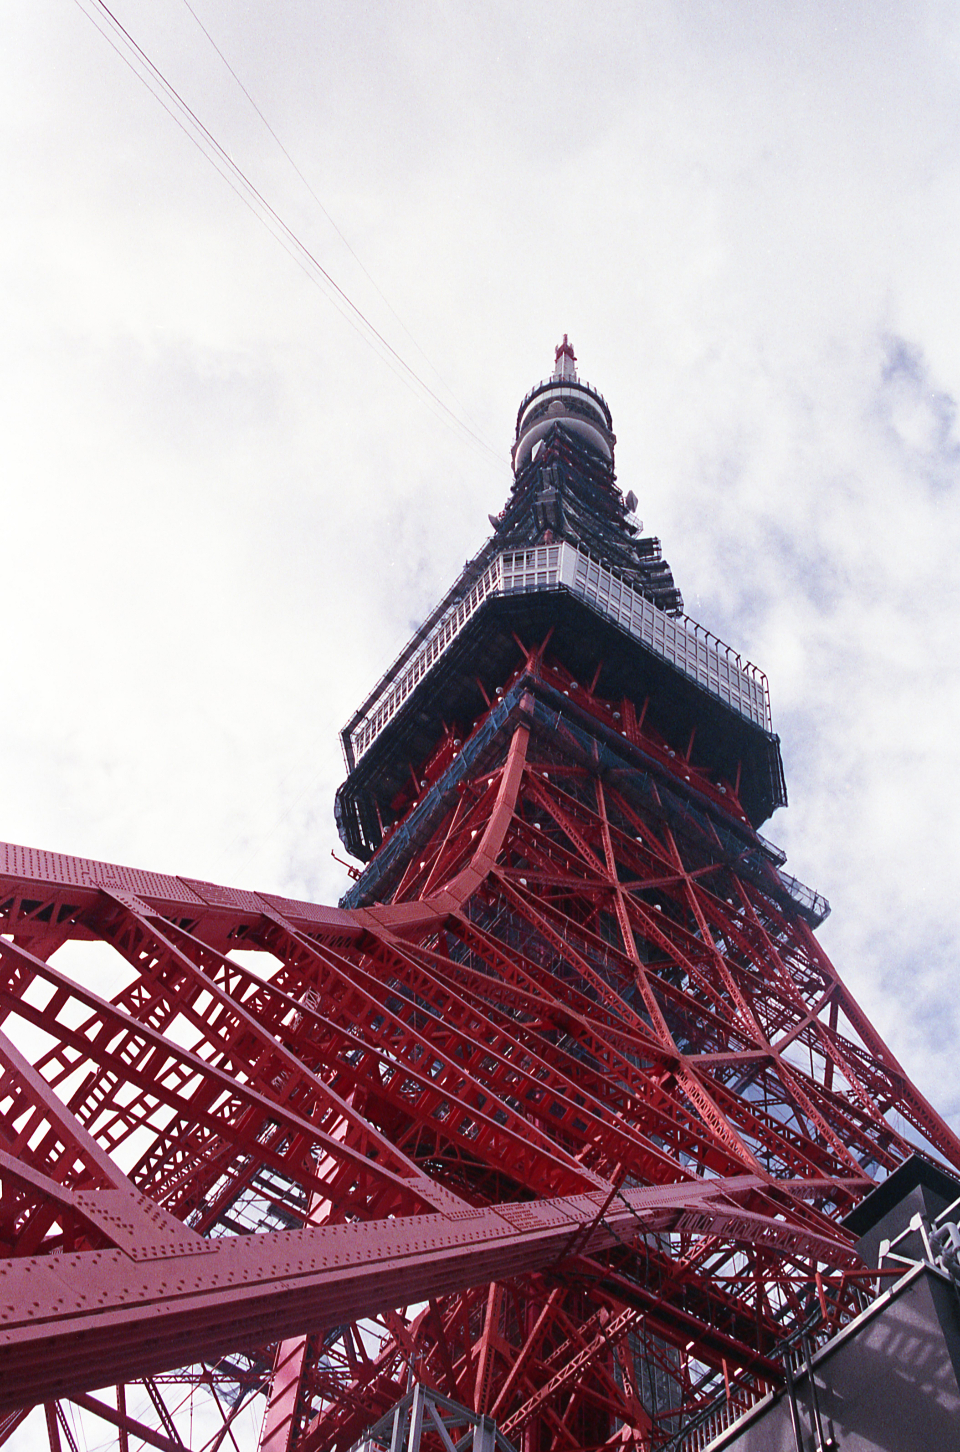 tower perspective view metal steel structure beams design architecture tall red landmark attraction city exterior